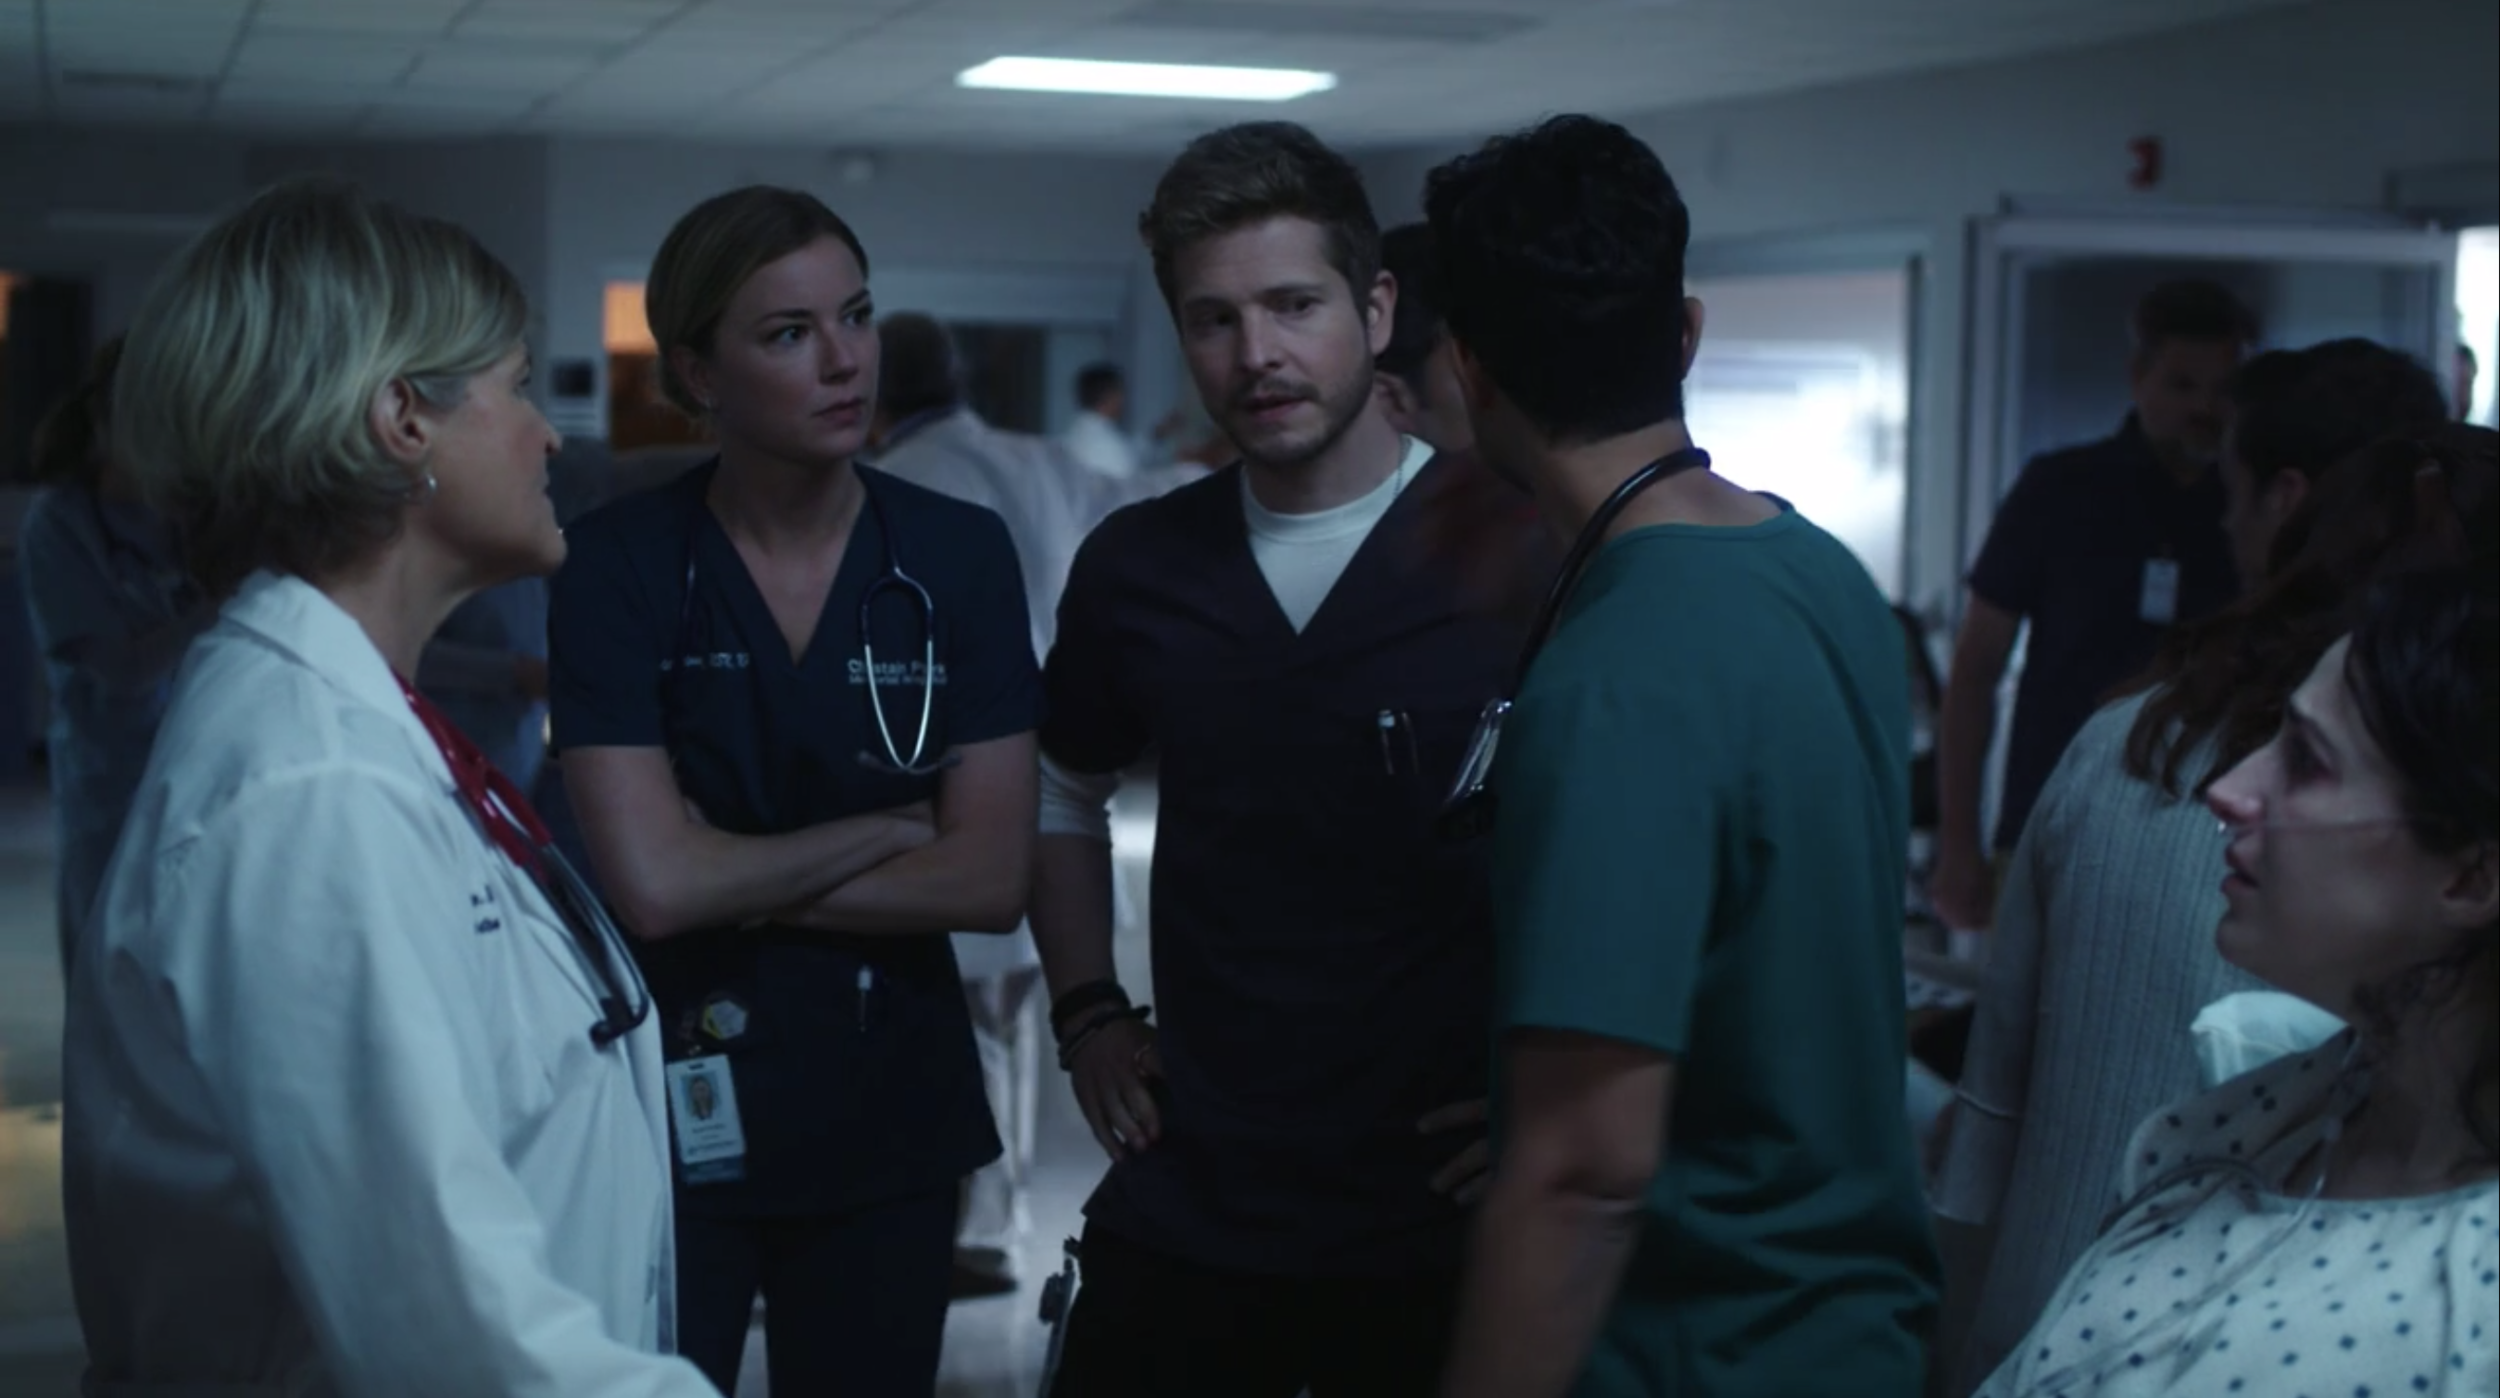 Adrienne_Whitney_Papp_The_ Resident_AdrienneWhitneyPapp_TheResident_S2E1_4.png